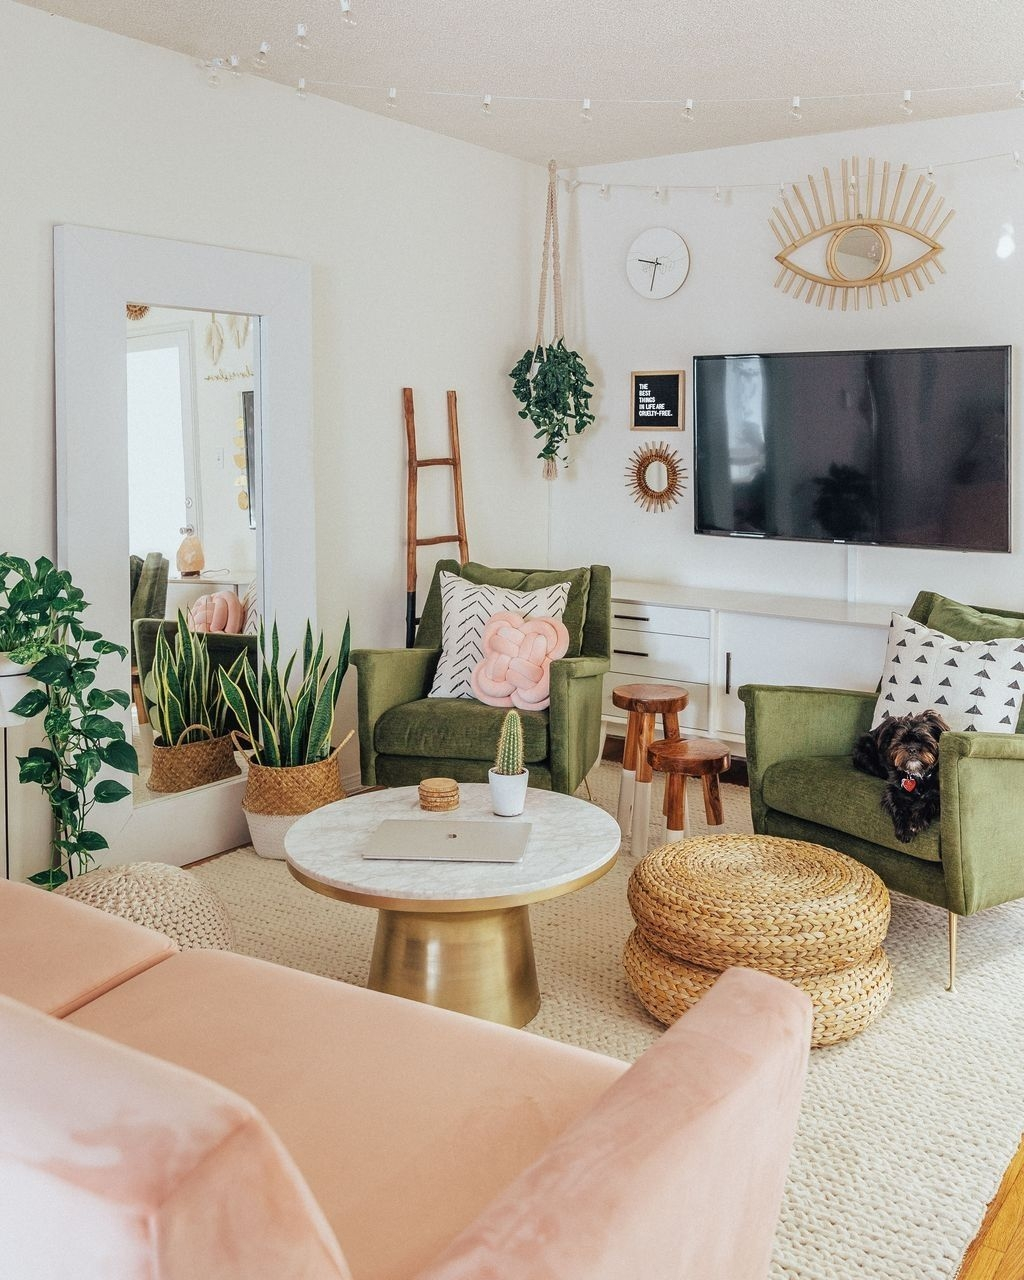 The Best Living Room Decorating Ideas Trends 2019 13